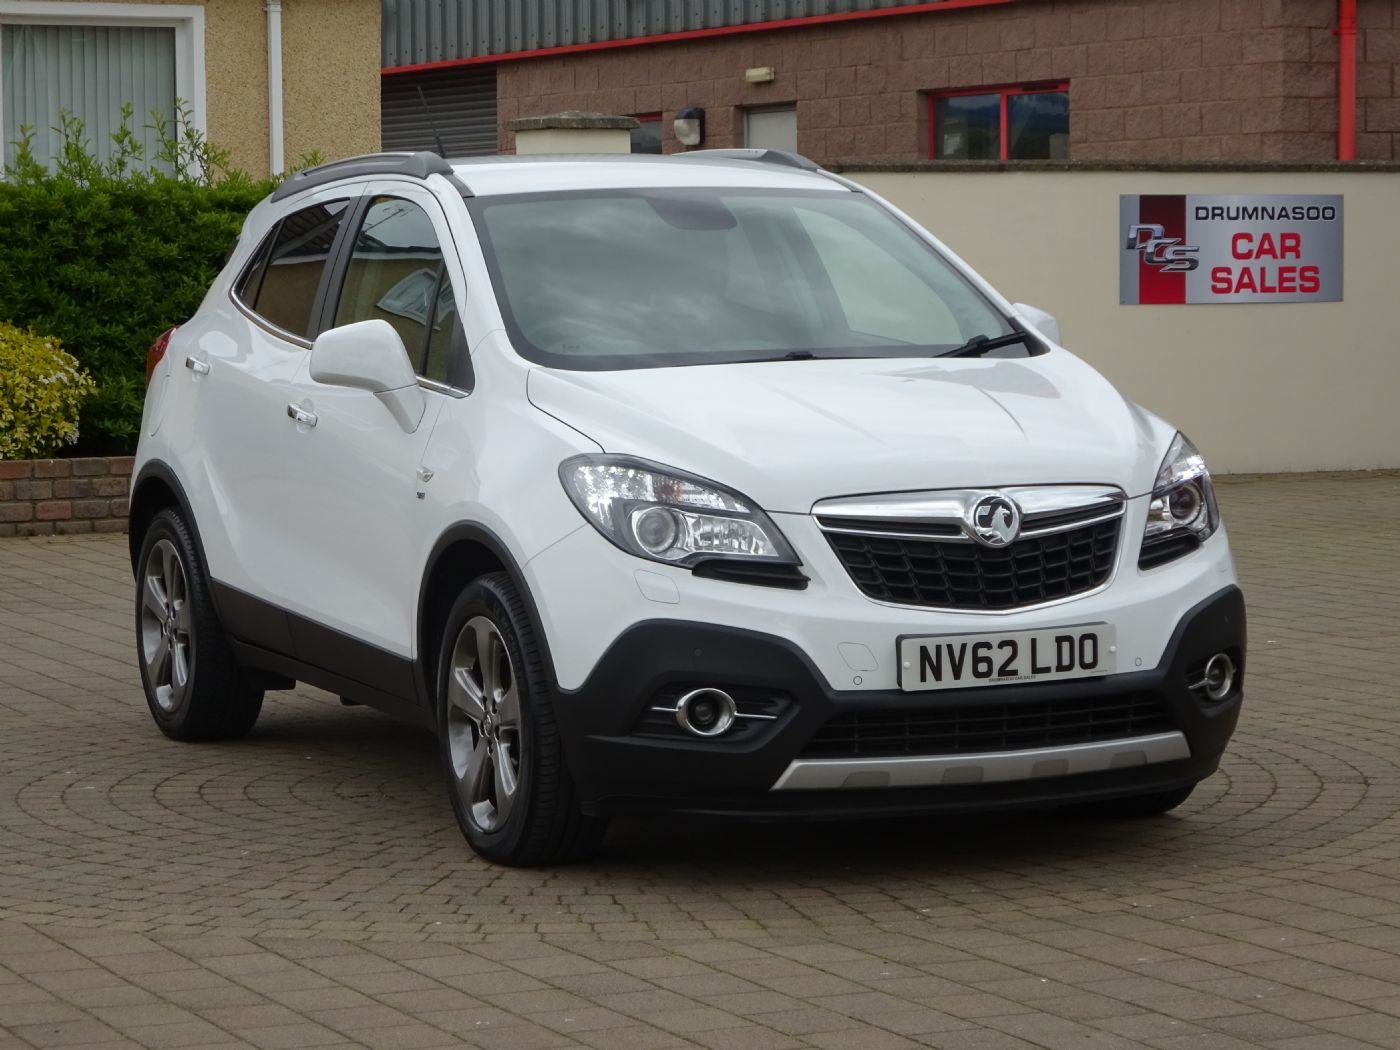 Vauxhall Mokka SE 1.7 CDTI , Full leather & Heated seats